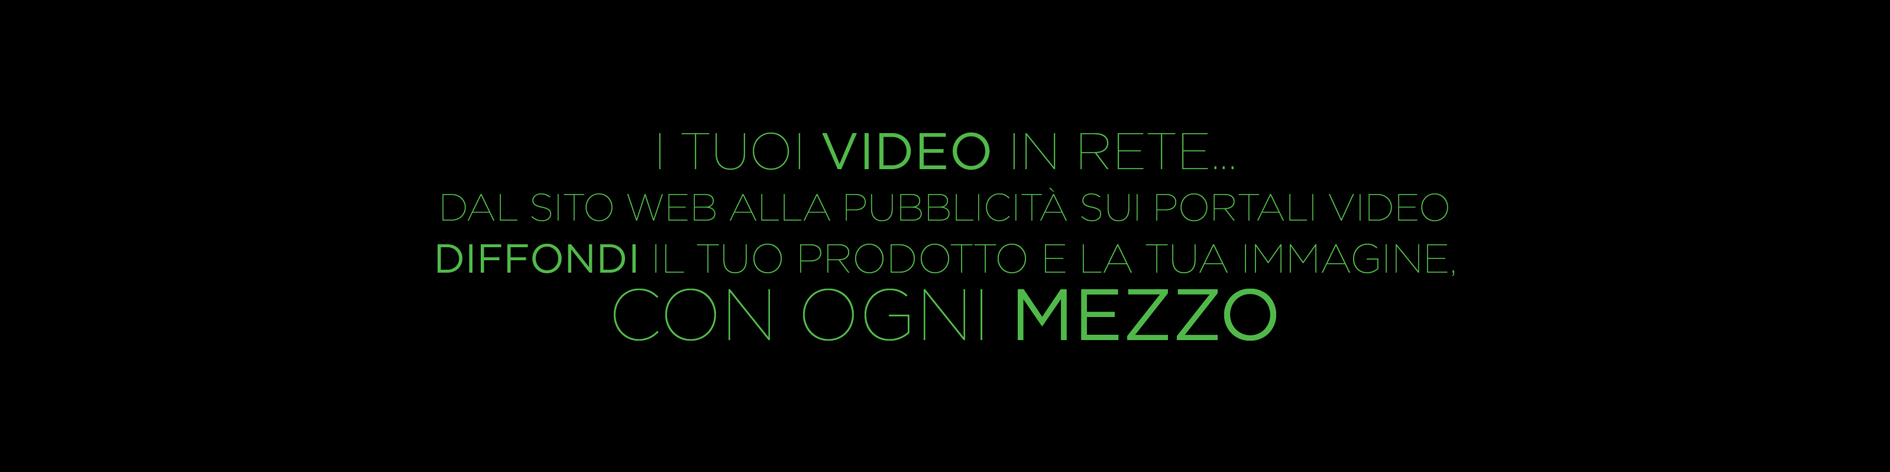 VeneziaSitiWeb_slides_video2